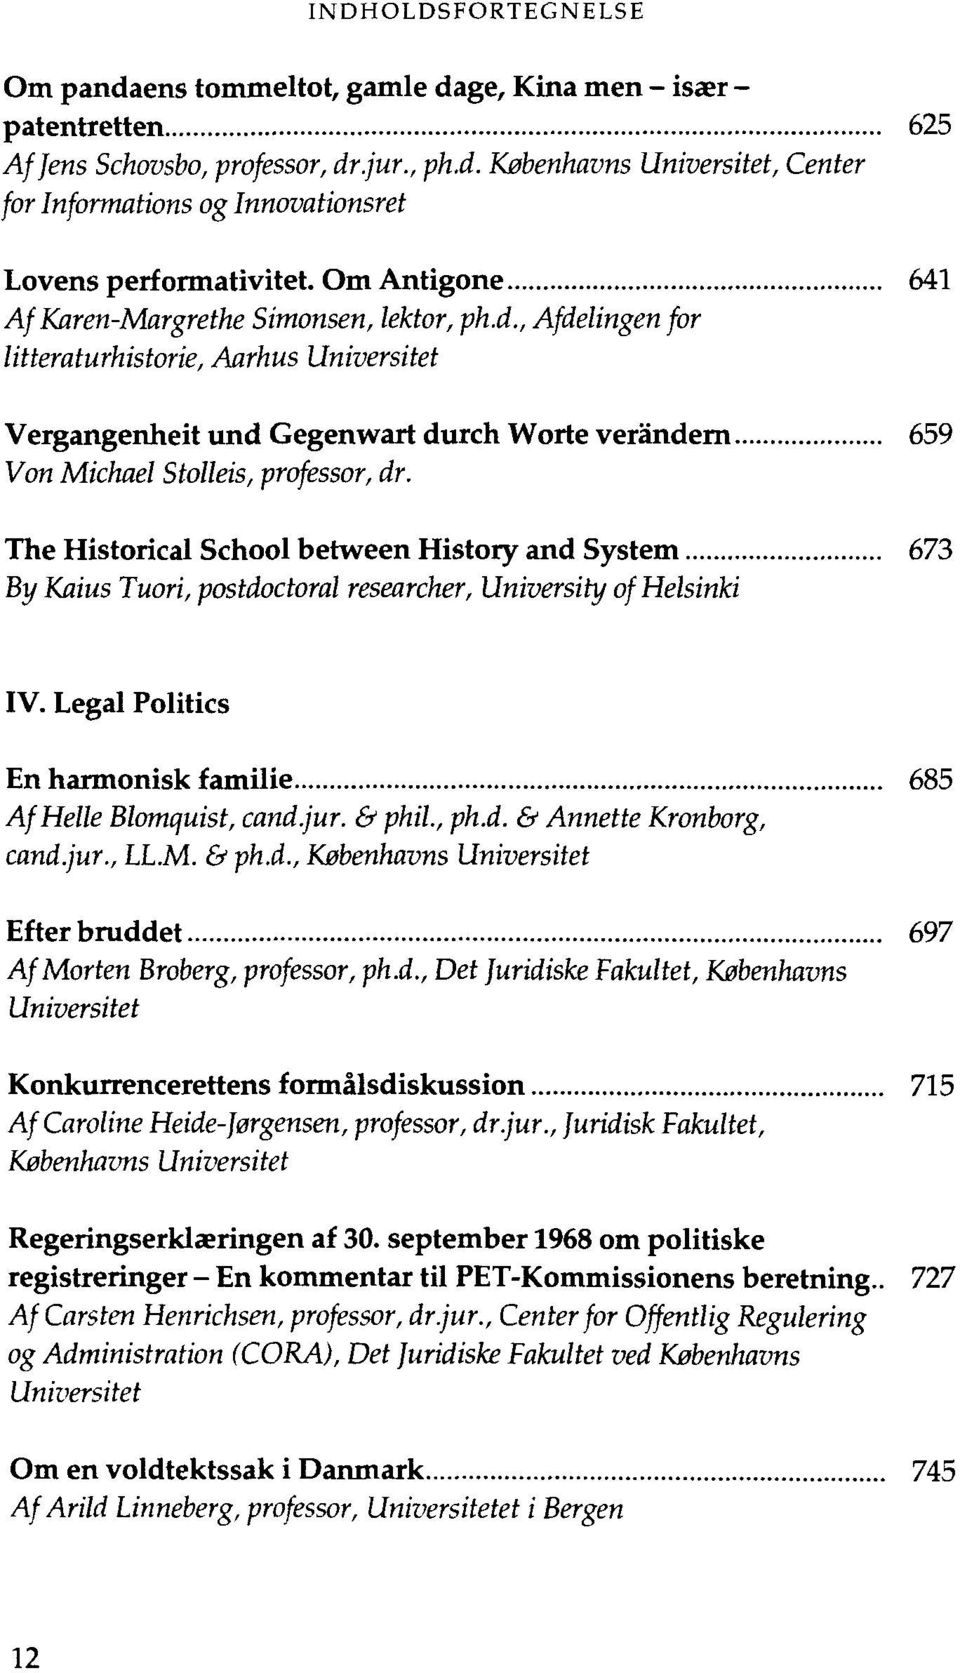 The Historical School between History and System 673 By Kaius Tuori, postdoctoral researcher, University of Helsinki IV. Legal Politics En harmonisk familie 685 Af Helle Blomquist, cand.jur. & phil.